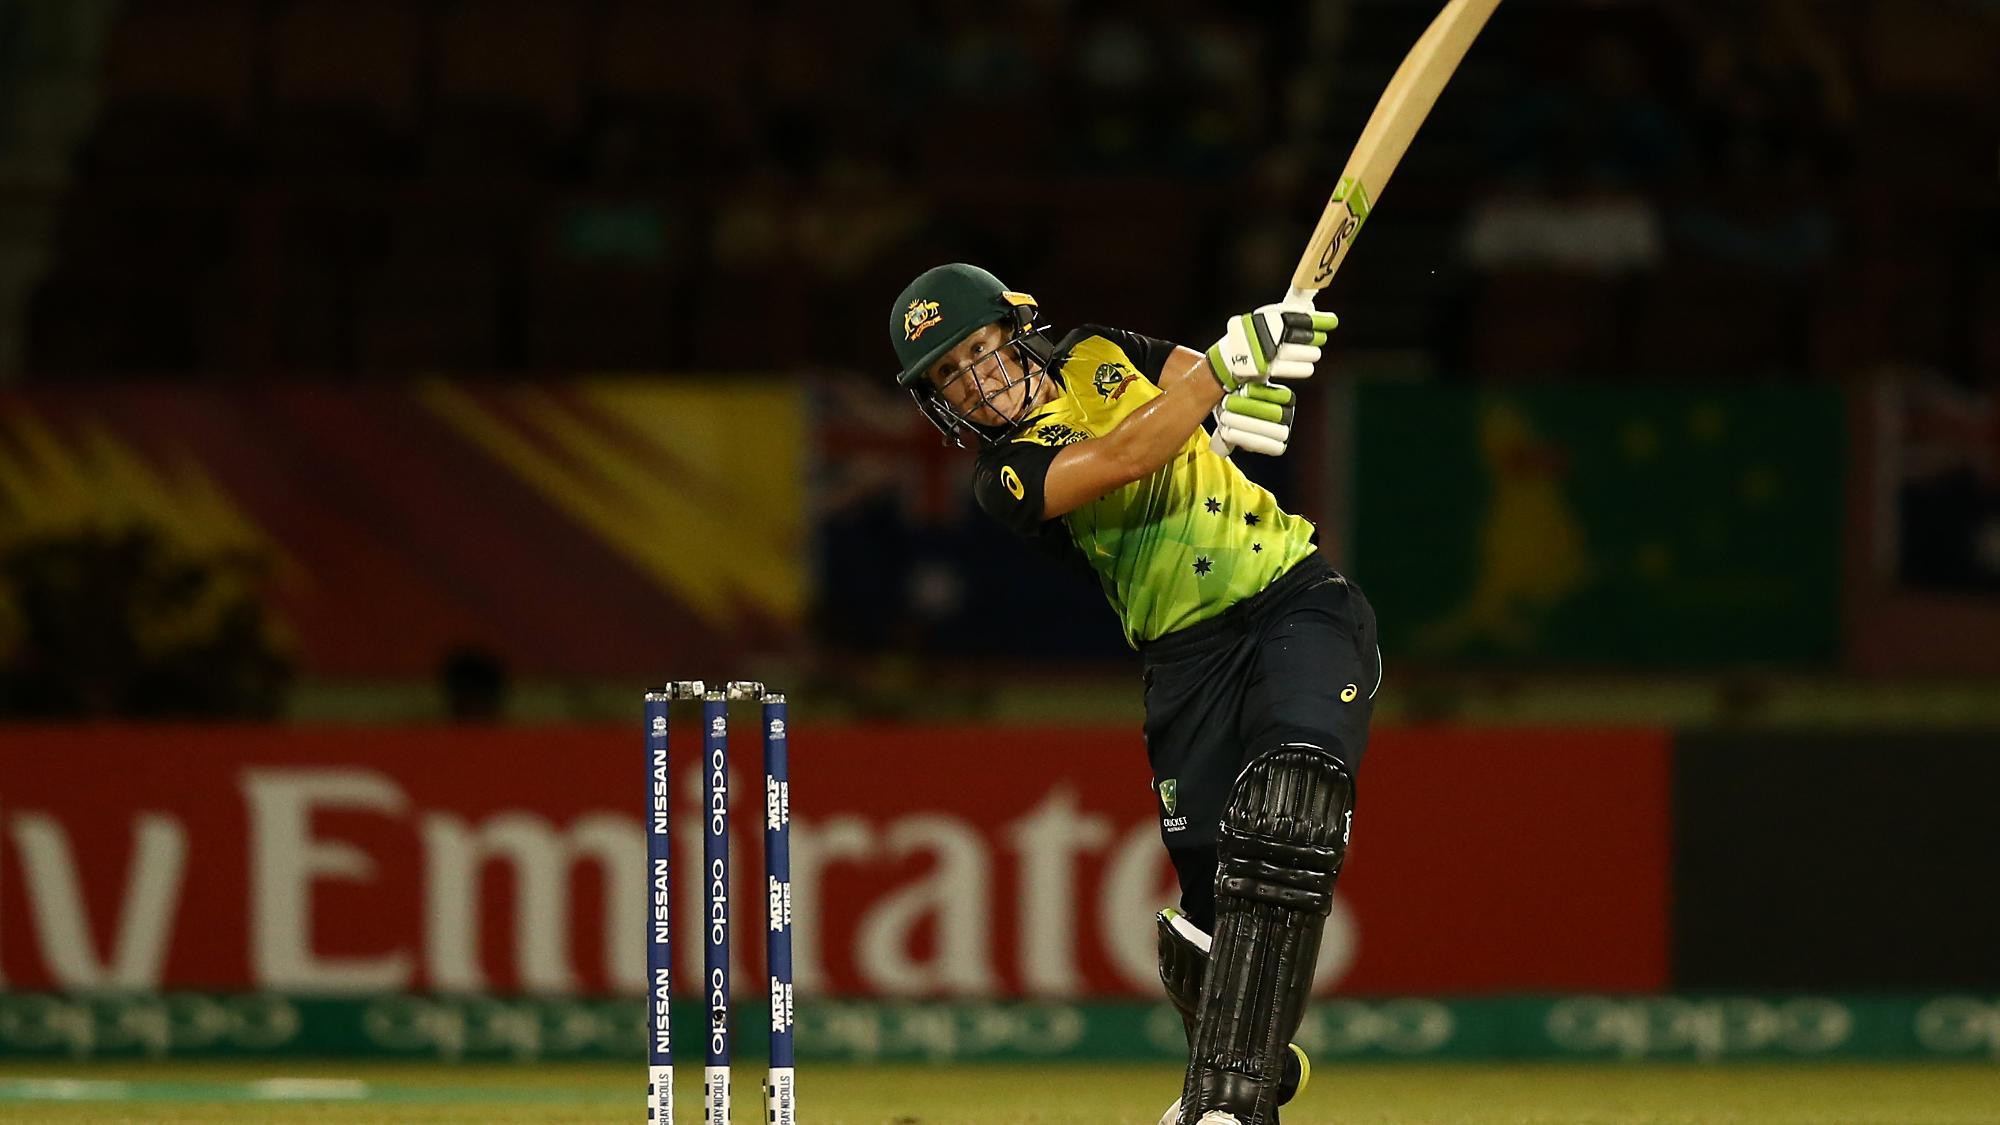 Australia's Alyssa Healy is off to a great start at the ICC Women's World T20  with three wins and three Player of the Match awards ©ICC Women's World T20